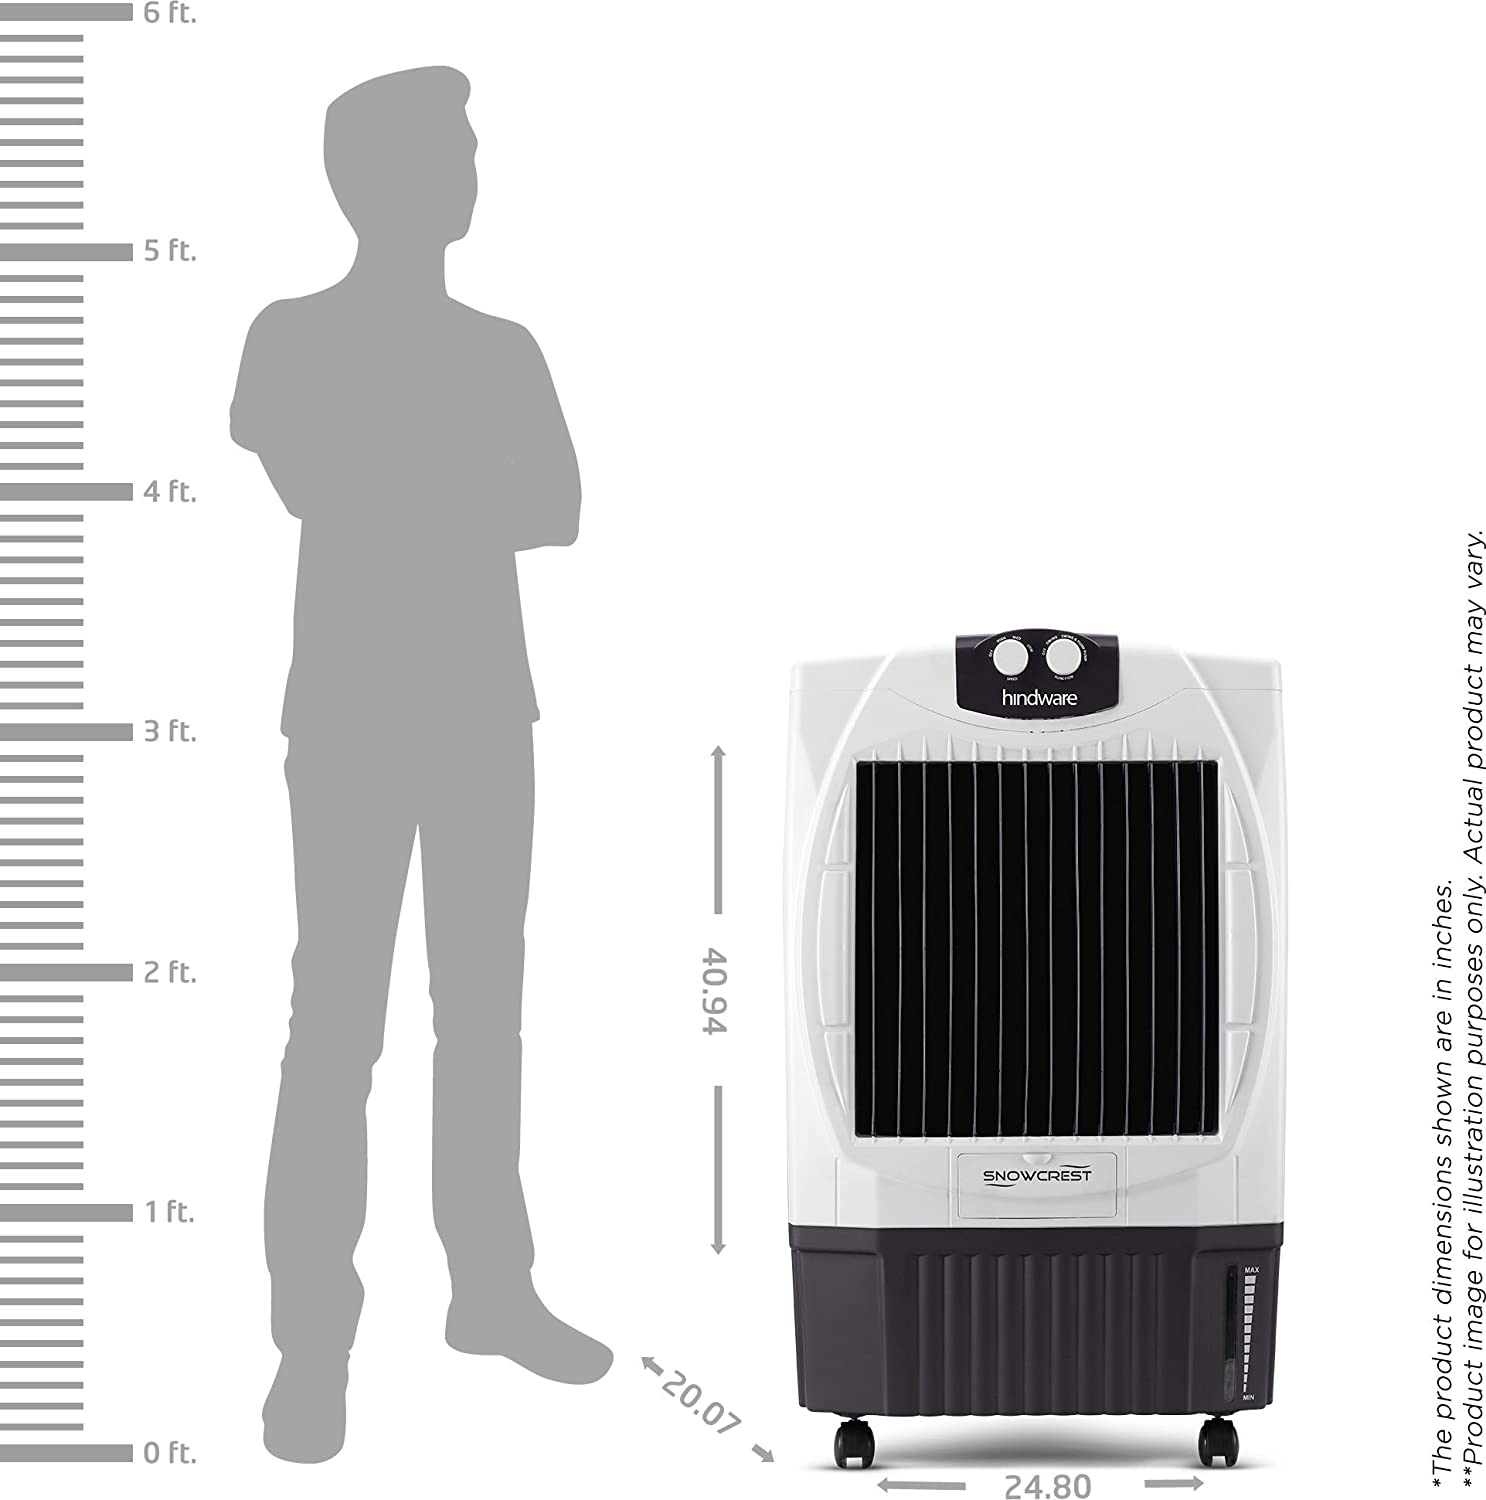 Hindware 190 snowcrest 50 w desert cd 165001wbr 50 litre air cooler hindware 190 snowcrest 50 w desert cd 165001wbr 50 litre air cooler brown amazon home kitchen fandeluxe